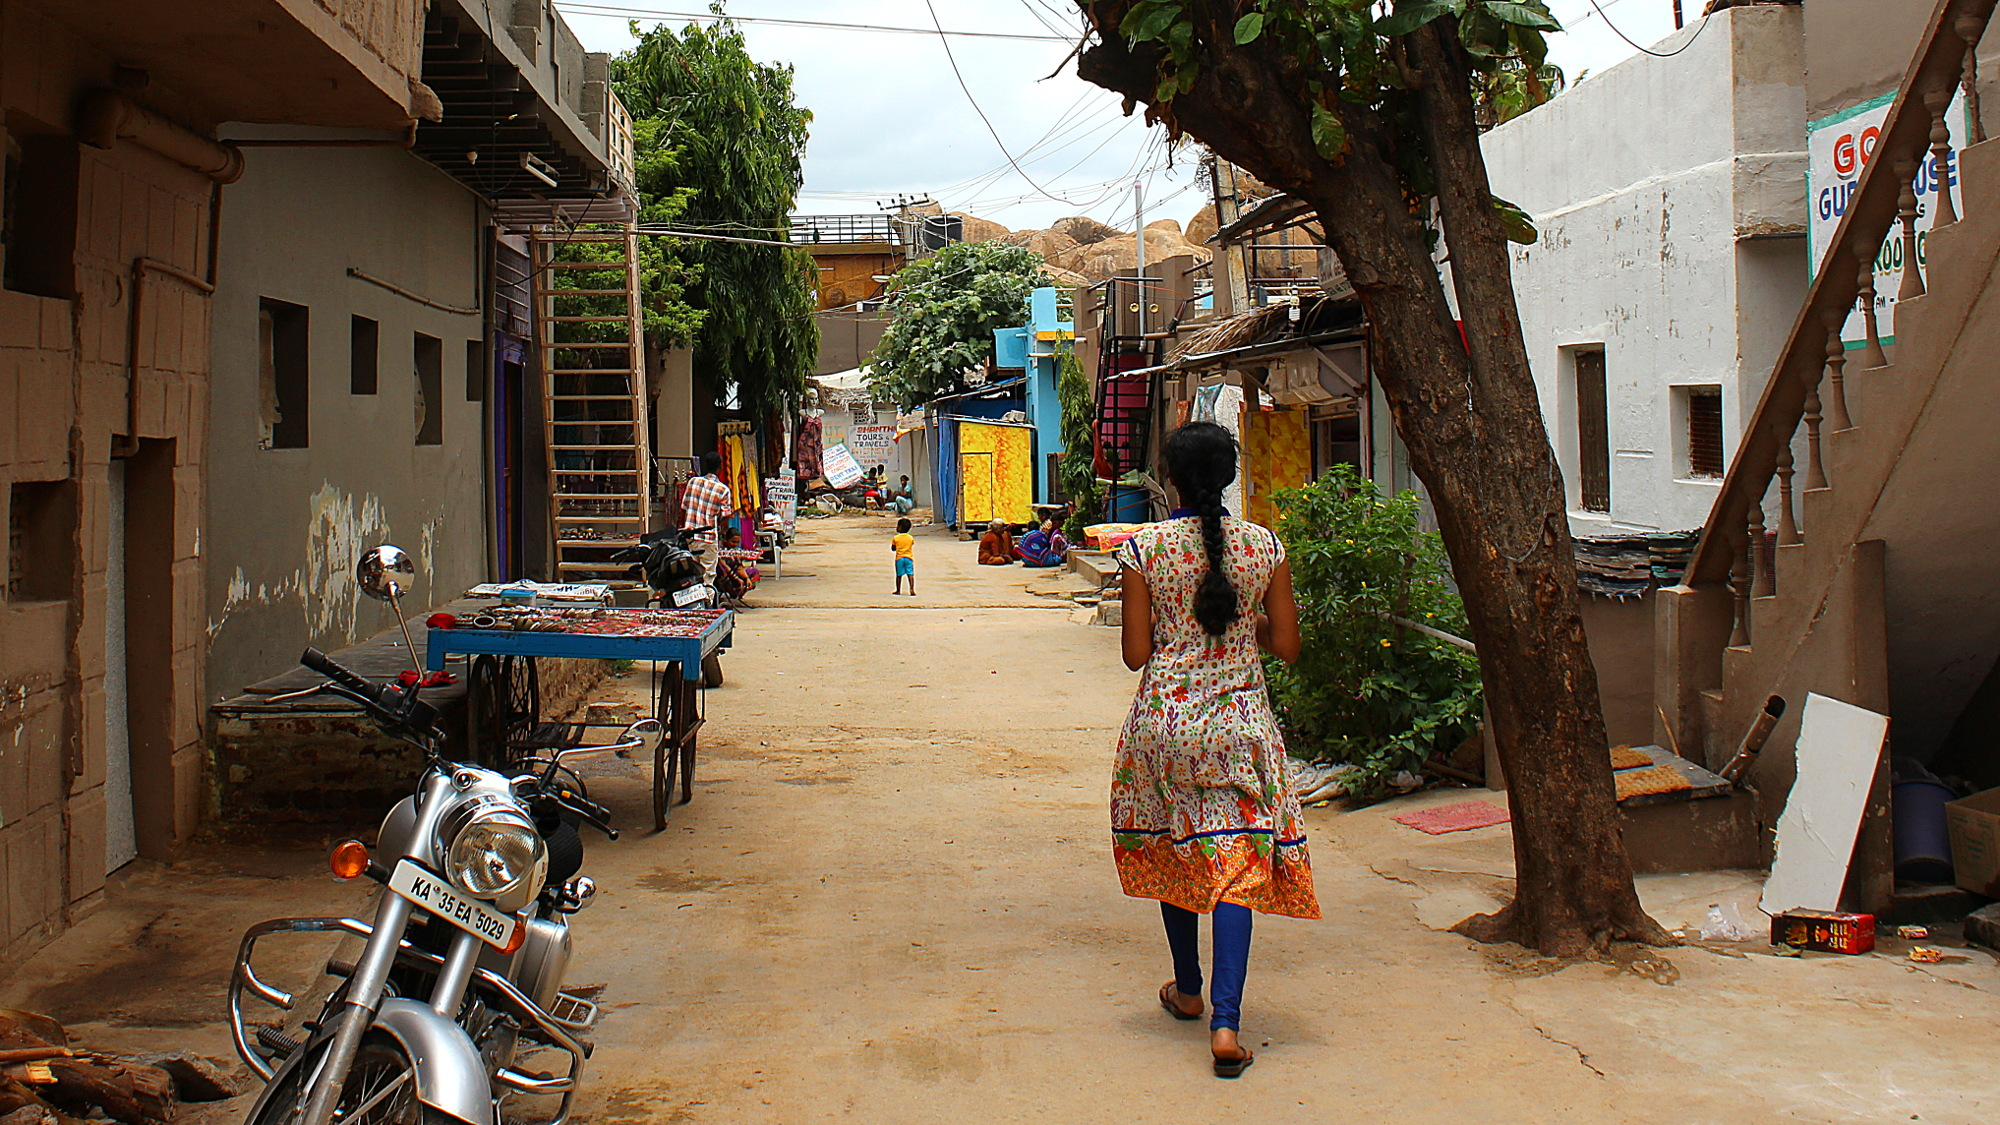 A quet street in Hampi Bazaar with a local woman walking away from the camera.